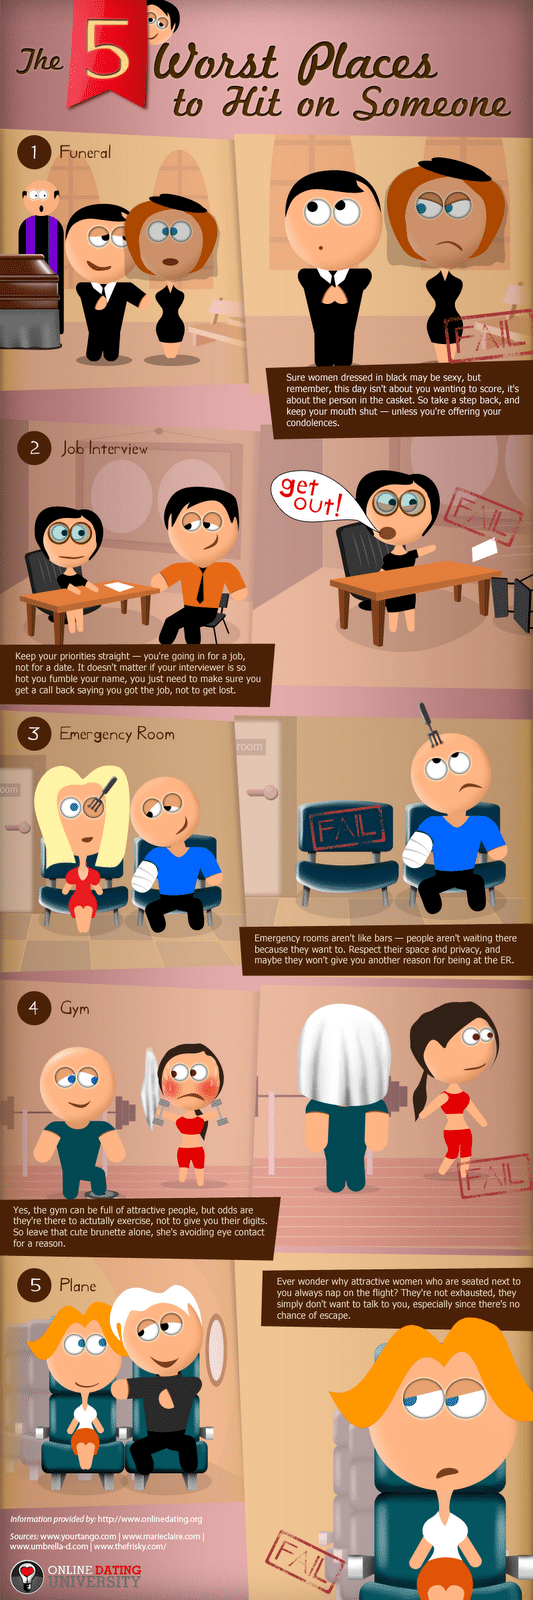 5 Worst Places To Hit On Someone [Infographic]